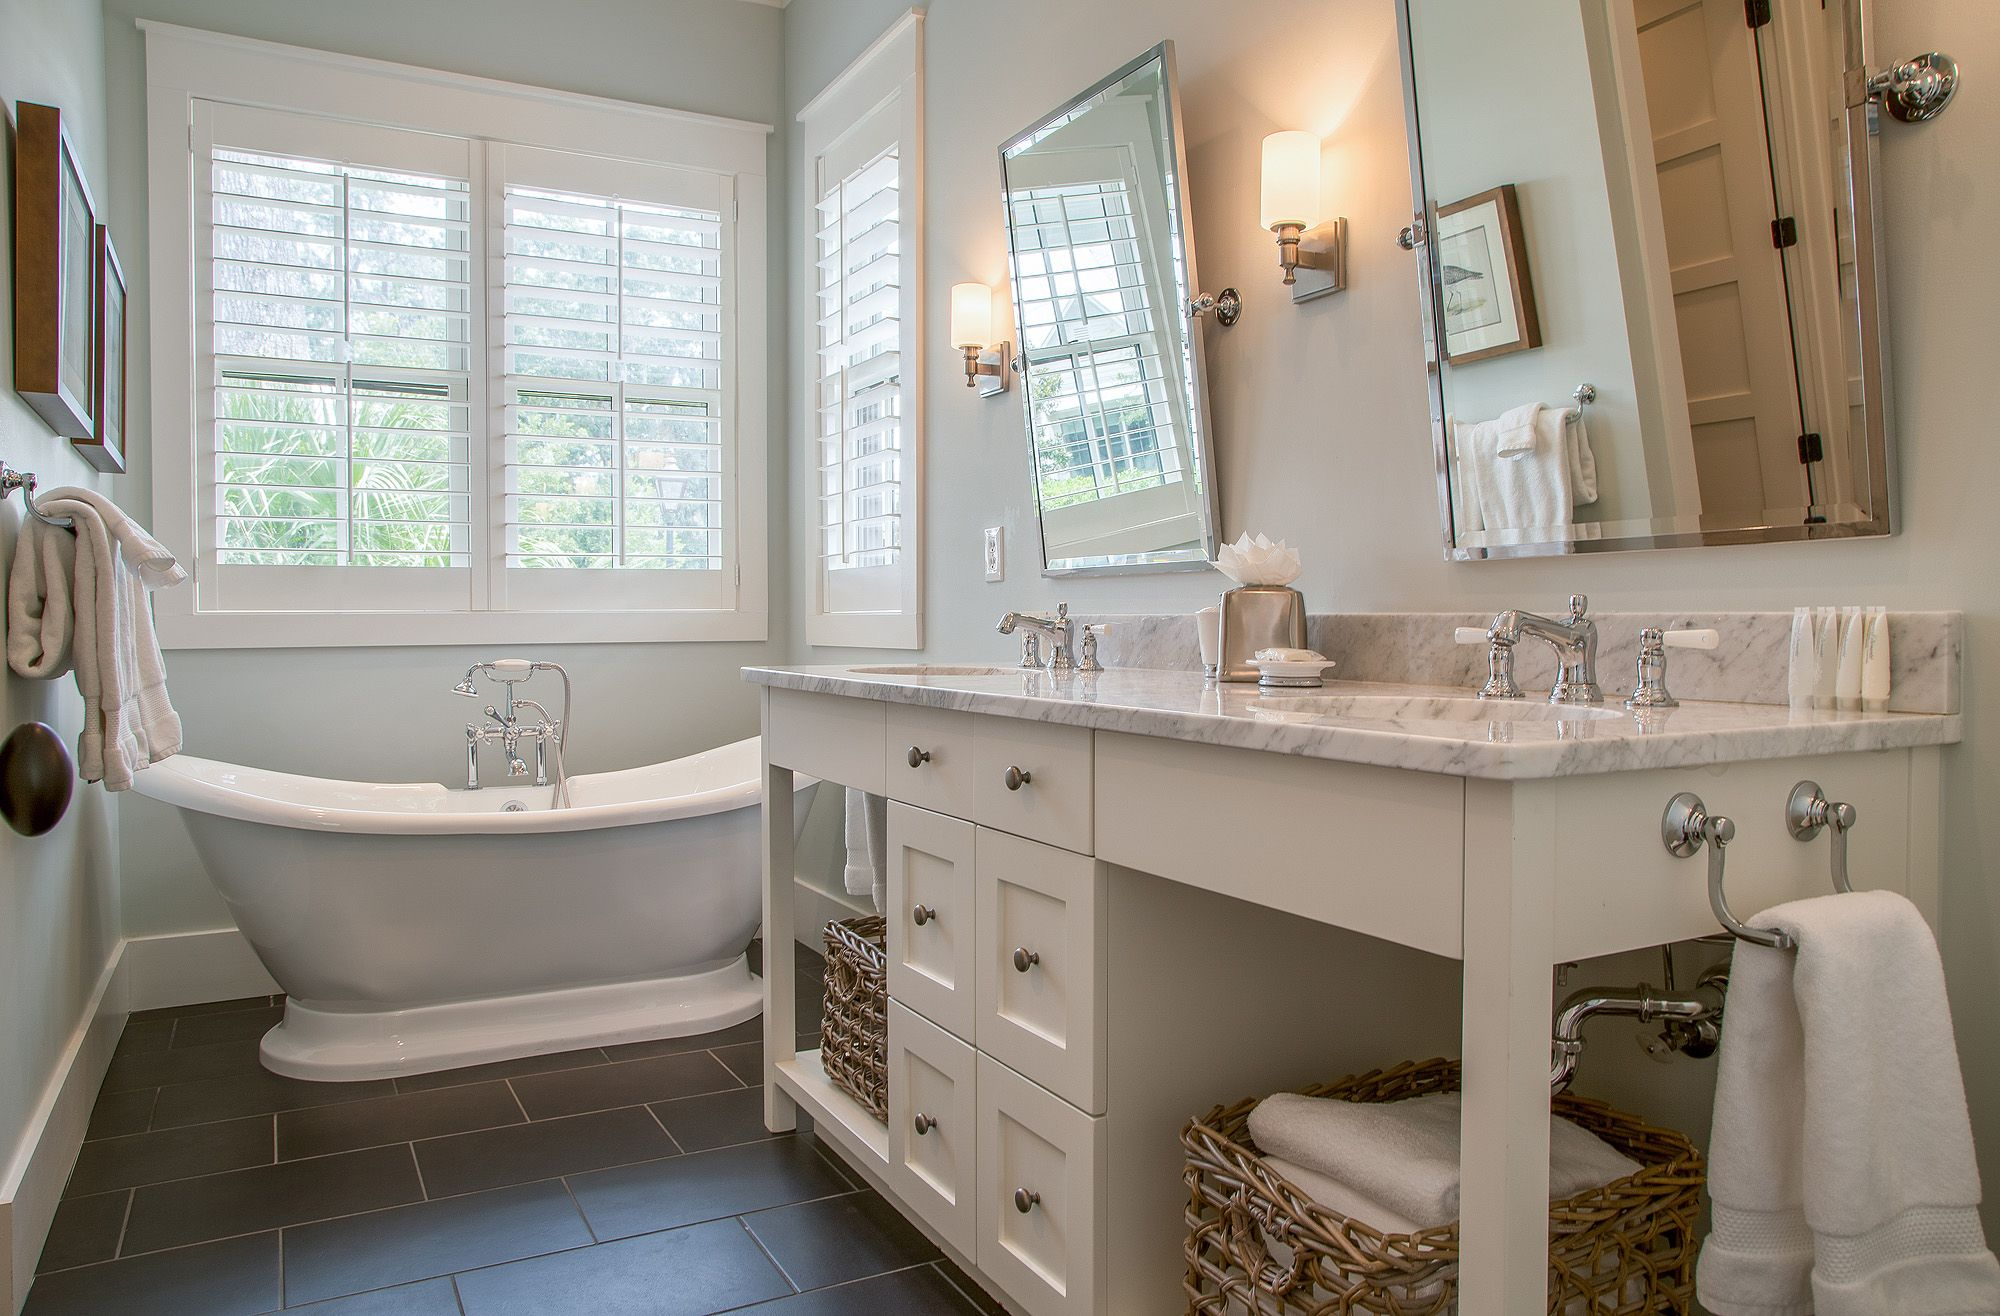 Freestanding Tub - Luxurious White Bathroom - Double Sink Vanity